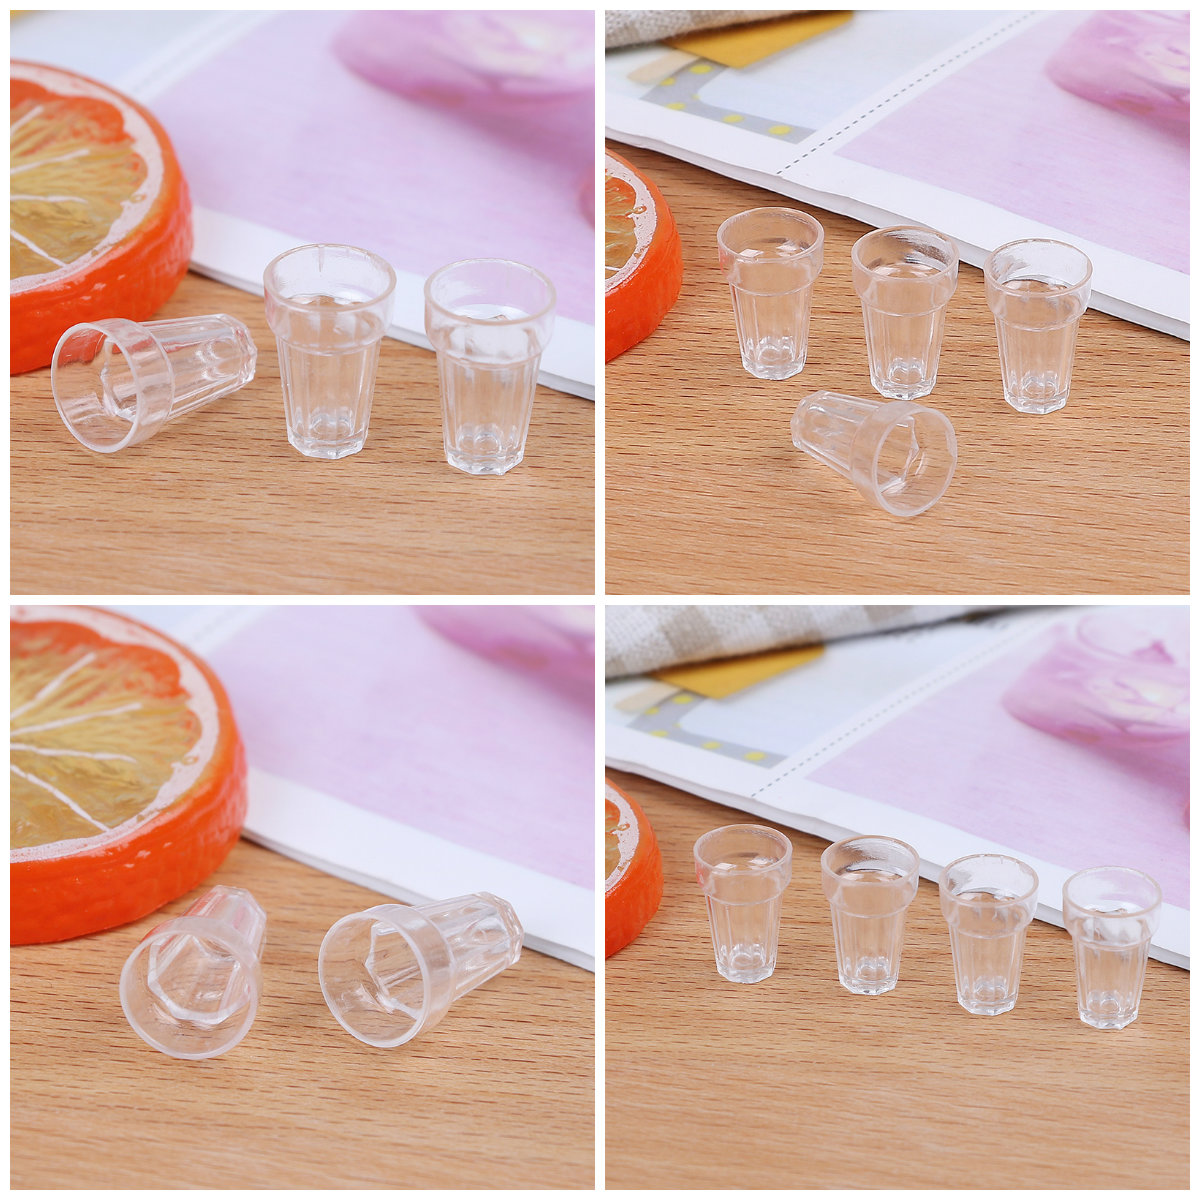 Analytical 4pcs/lot Craft Transparent Miniature Home Decoration Glass Model 13mm*19mm Diy Parts Mini Cola Wine Beer Cup Dollhouse Spare No Cost At Any Cost Home